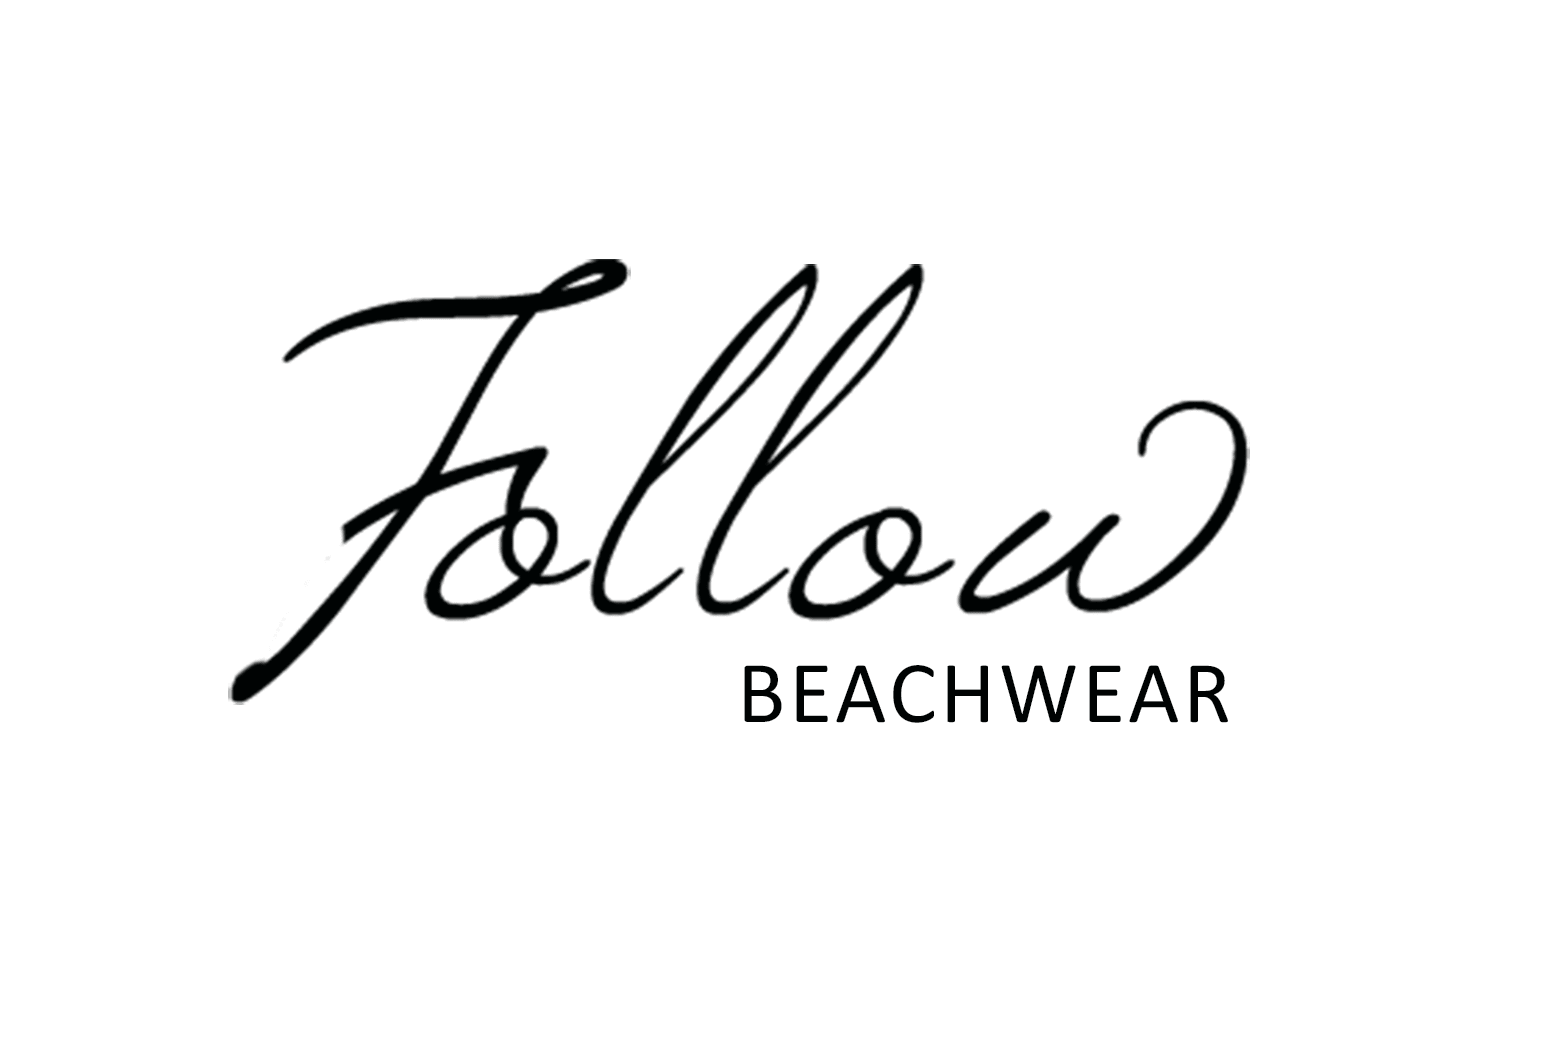 Follow Beachwear